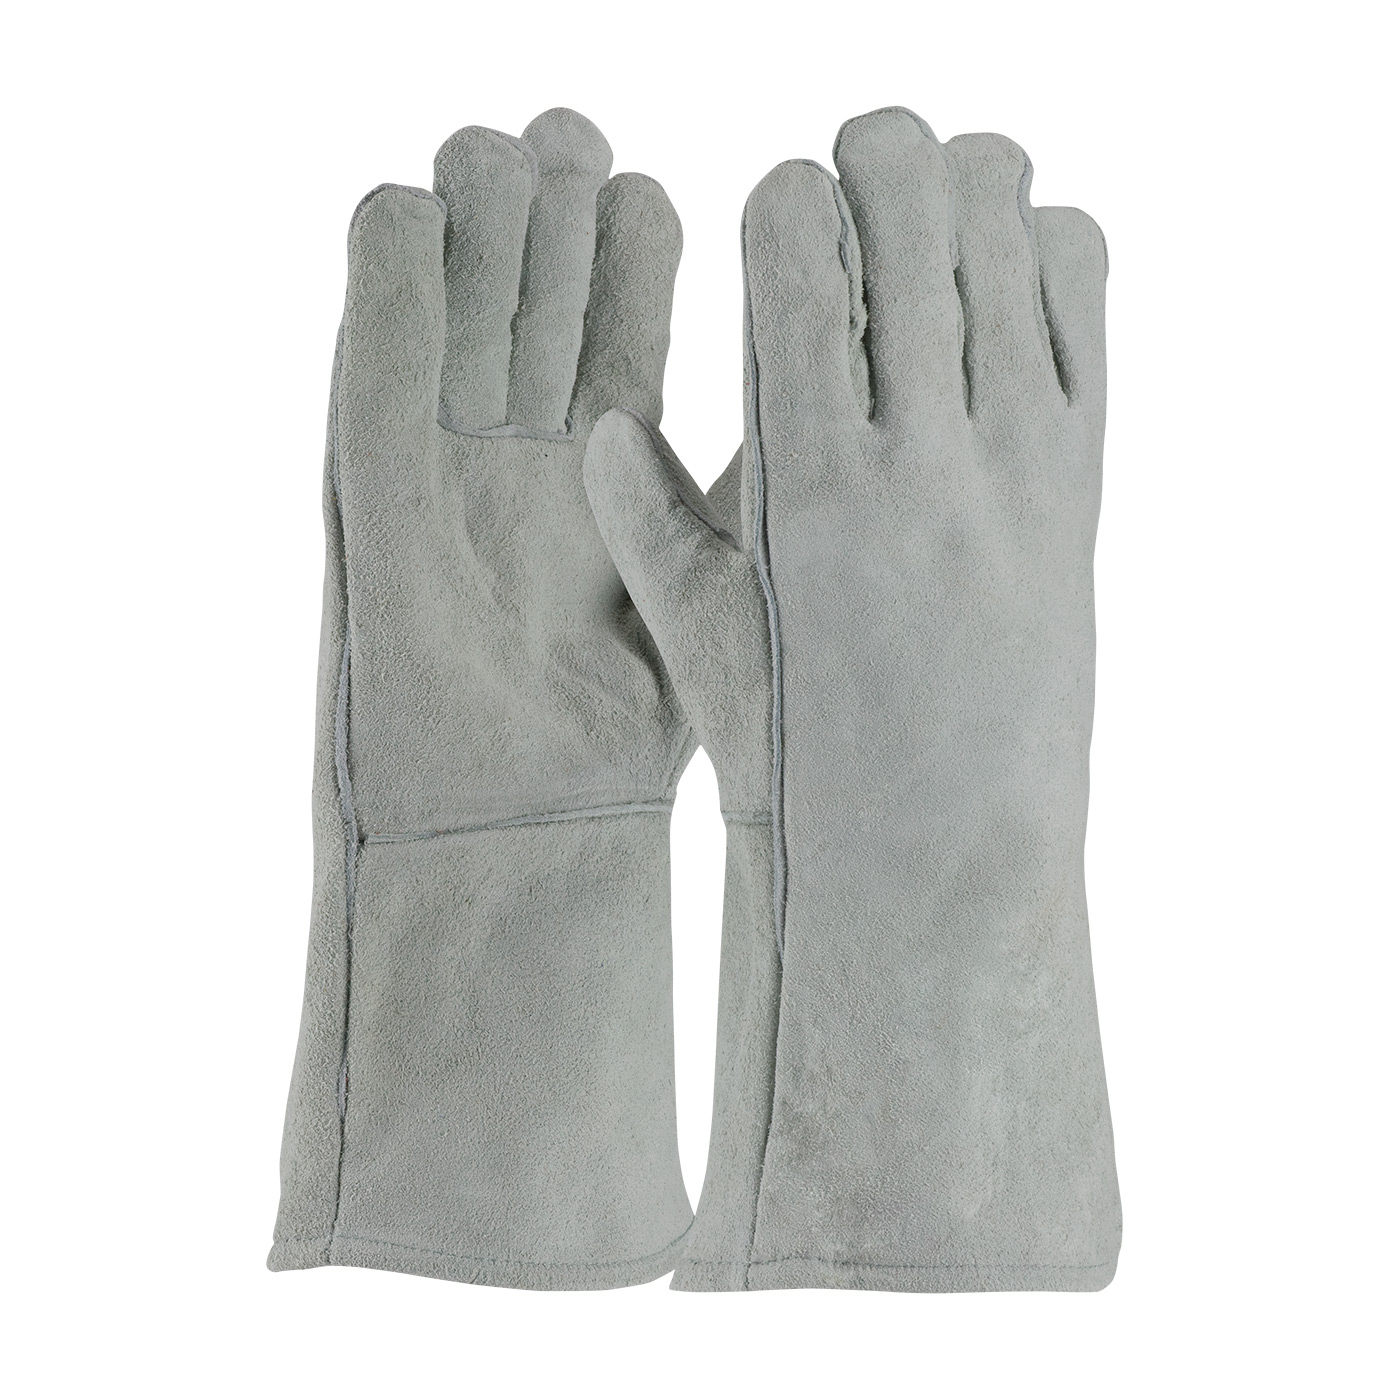 #73-888 PIP® Shoulder Split Cowhide Leather Welder's Glove with Cotton Liner